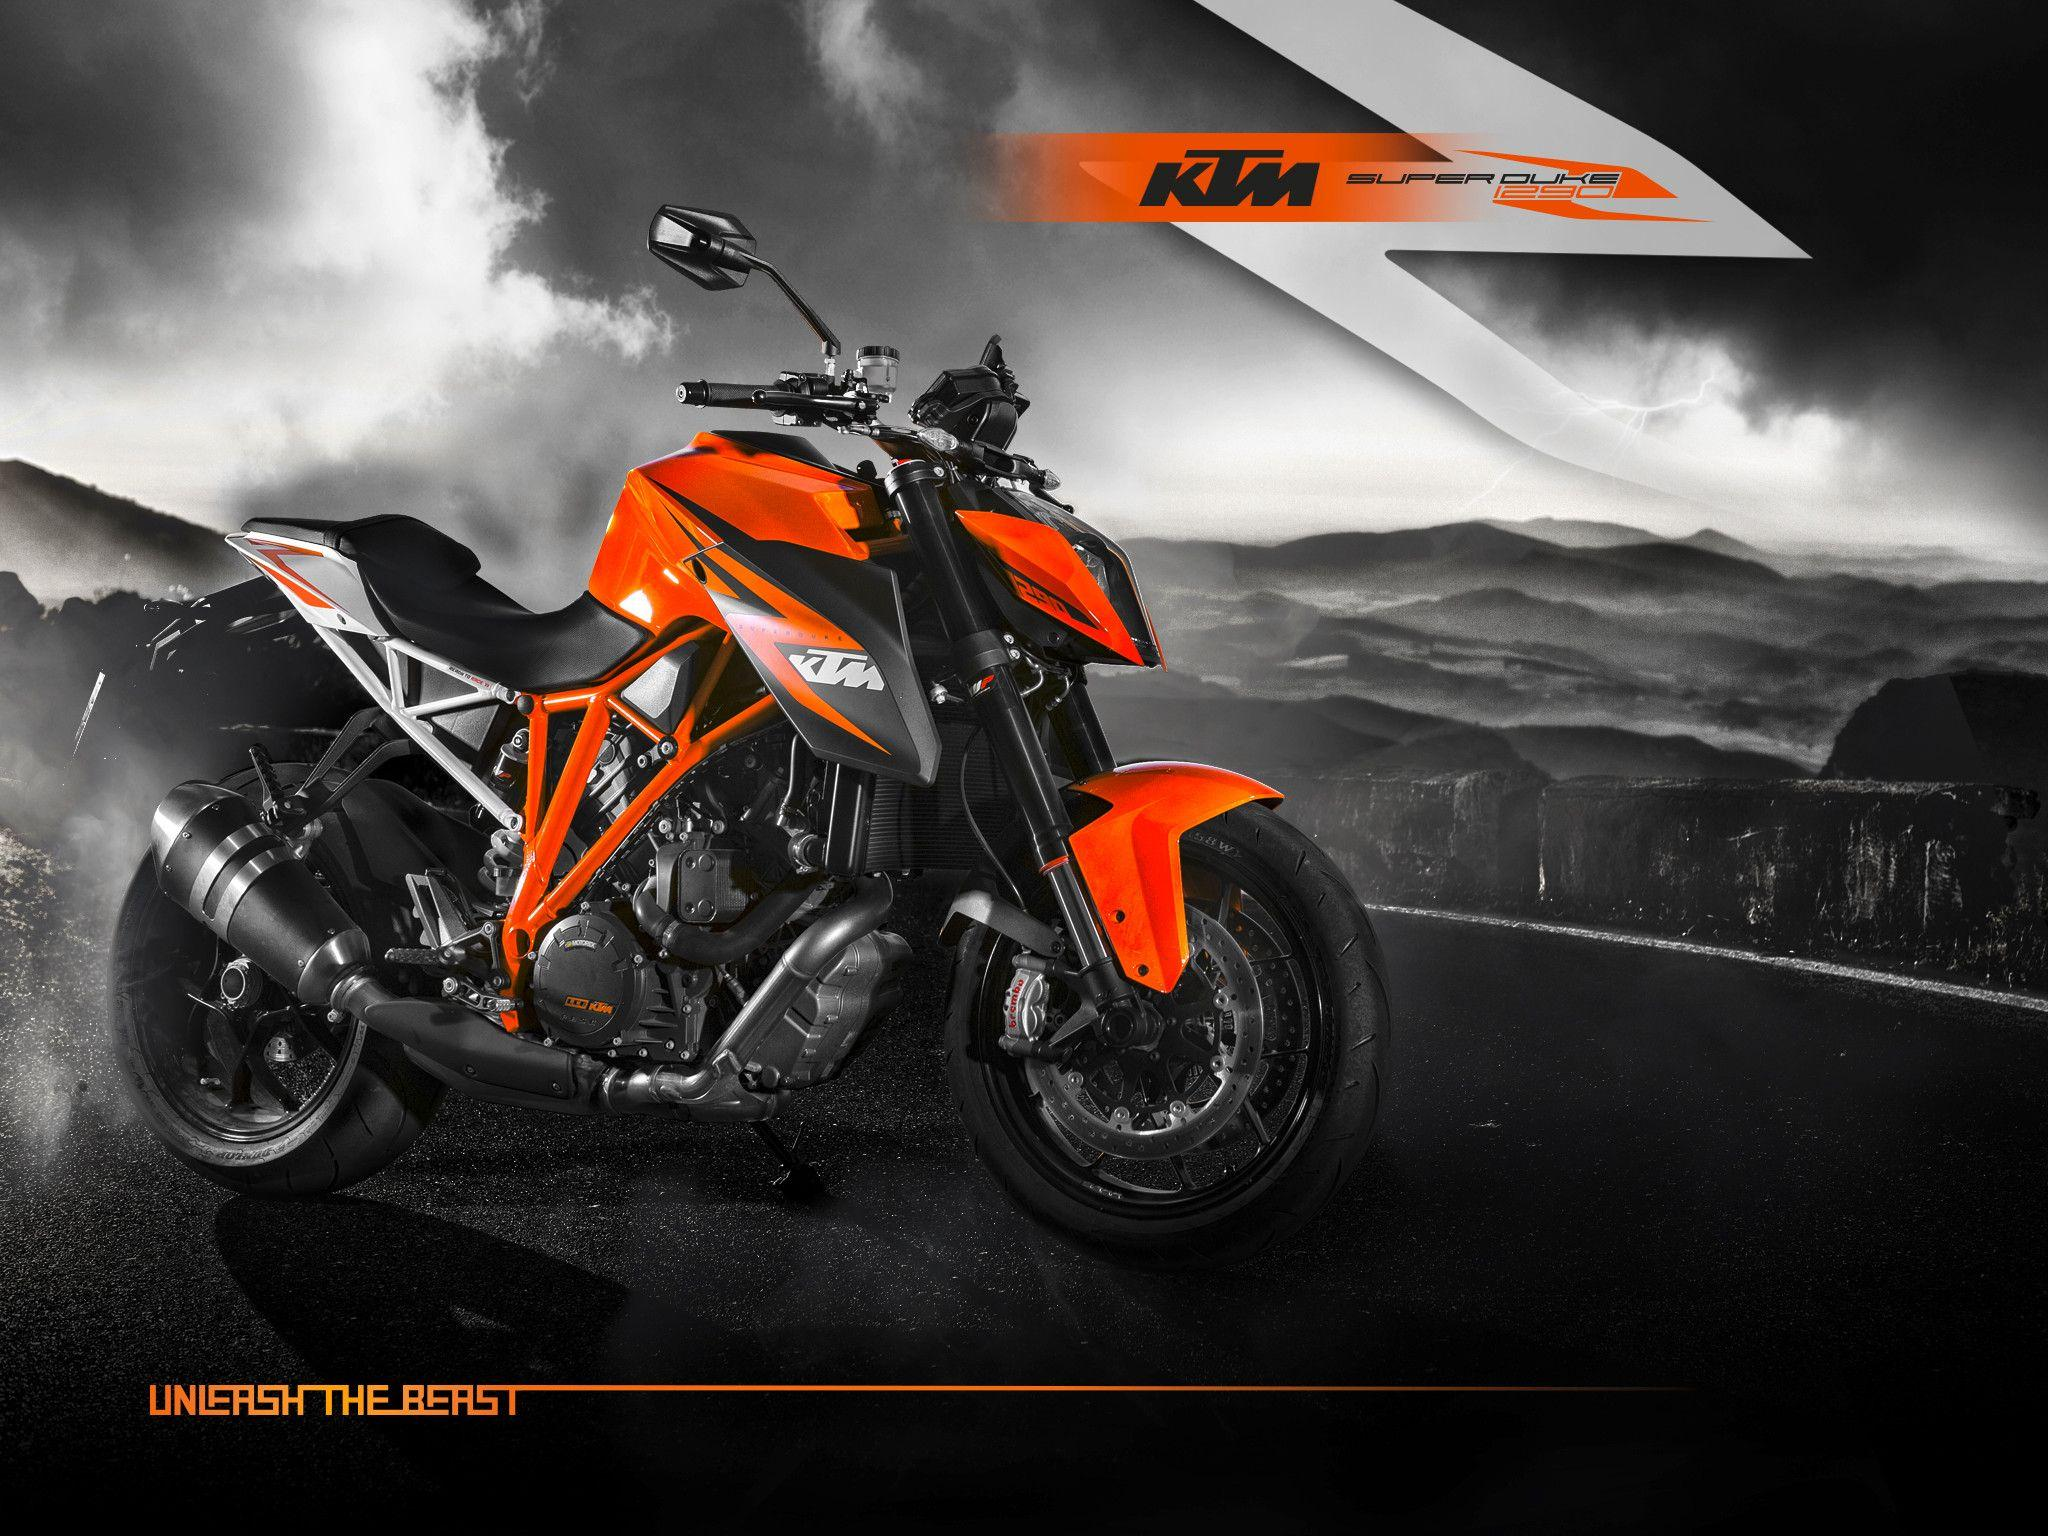 Ktm Logo Wallpapers HD 70+